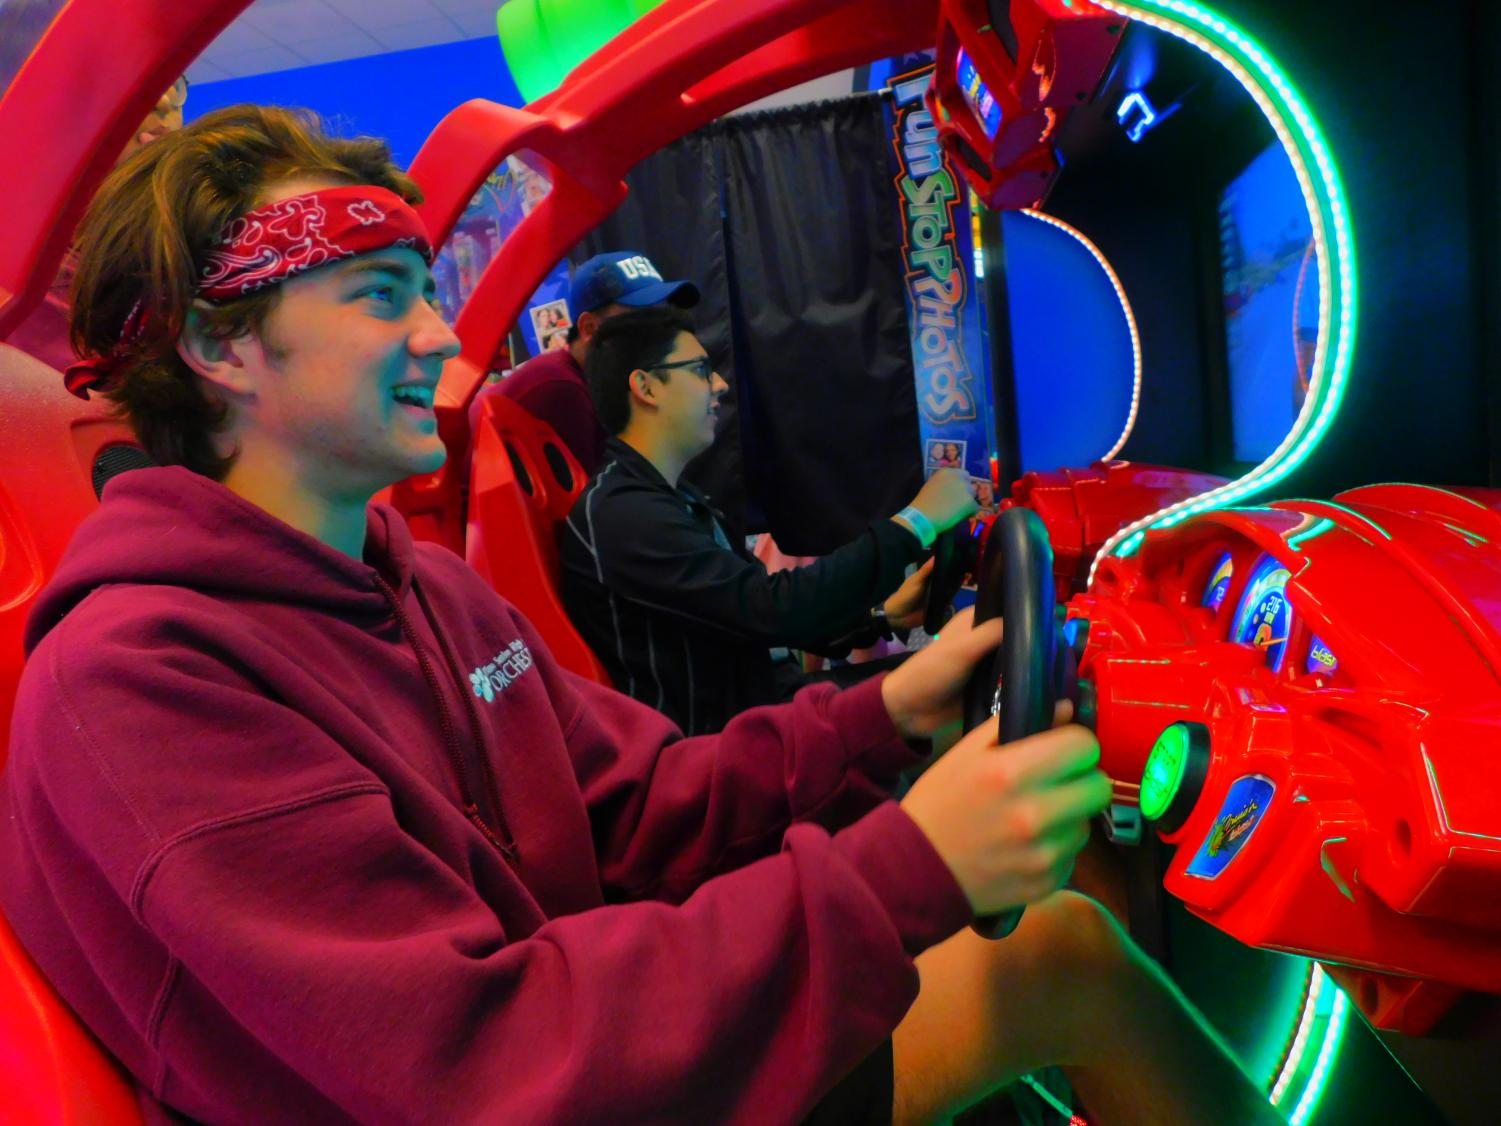 Juniors Jackson Freeman and Daniel Restrepo play games at an arcade in Branson, MO on the orchestra trip. (photo by Ethan Nguyen)